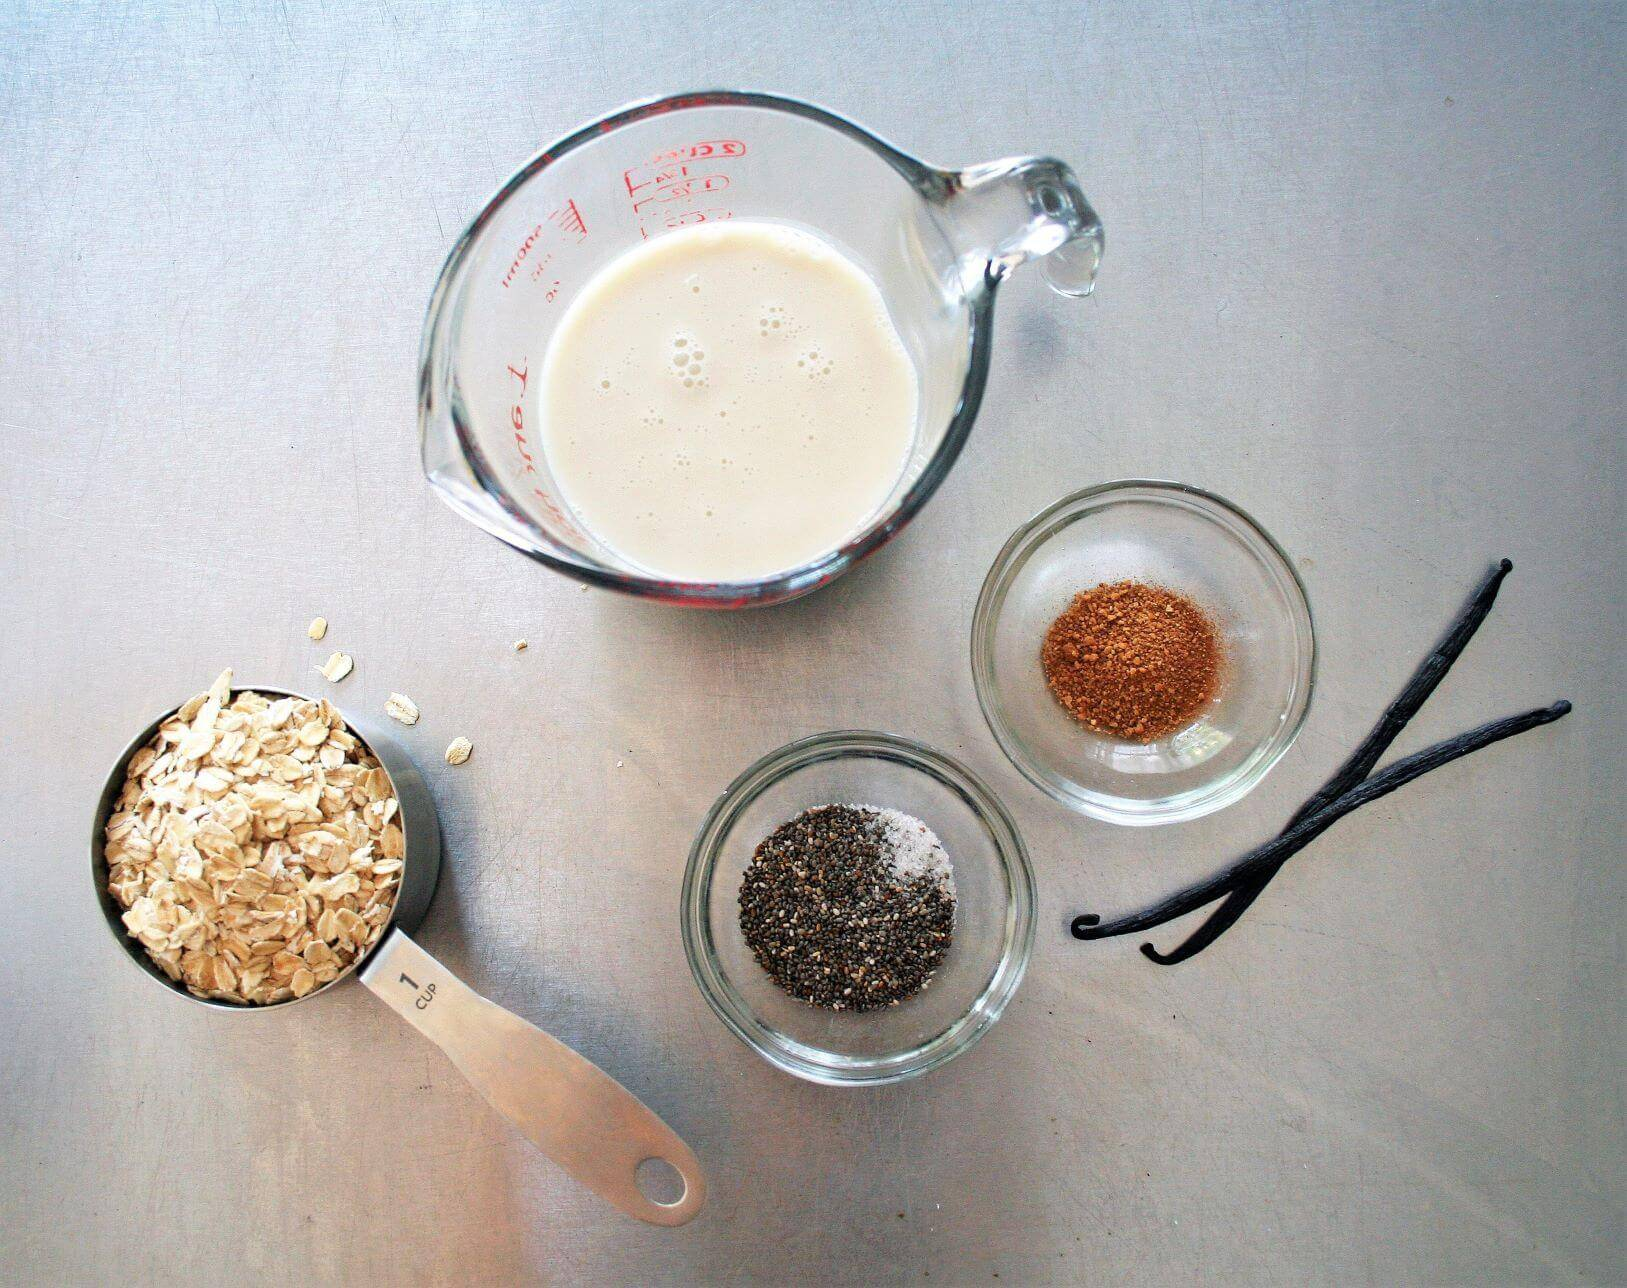 Oats in measuring cup, almond milk, chia seeds, FreshJax Organic maple Cinnamon, and vanilla beans on table.